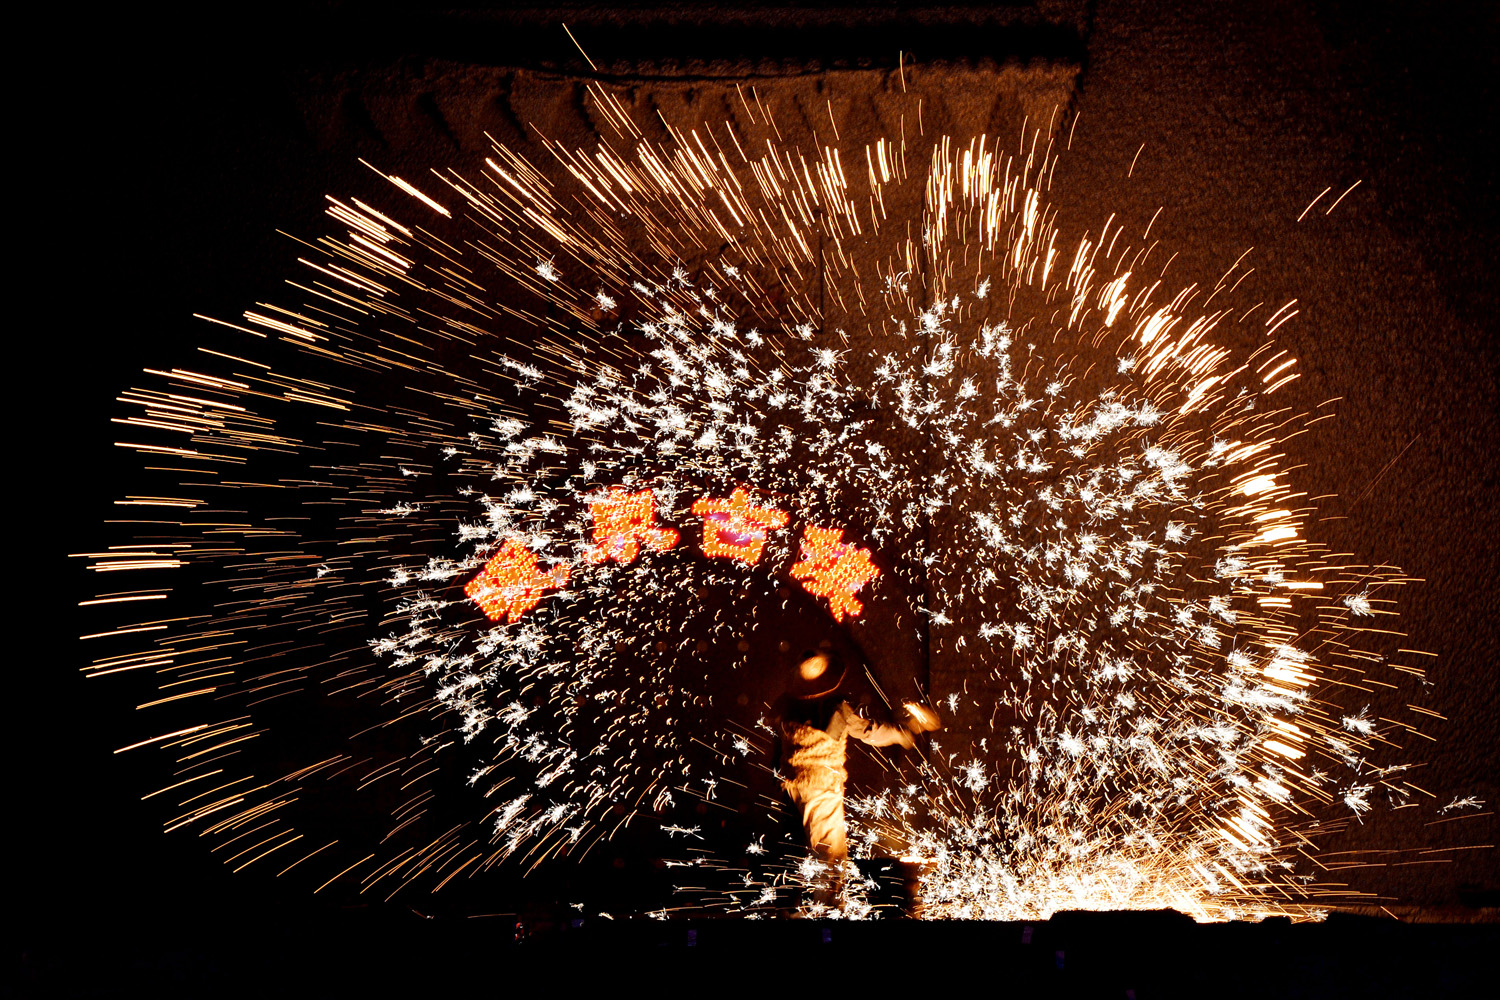 Feb. 24, 2013. A Chinese blacksmith throws molten metal against a cold stone wall to create sparks during the Lantern Festival which traditionally marks the end of the Lunar New Year celebrations, in Nuanquan, Hebei province.